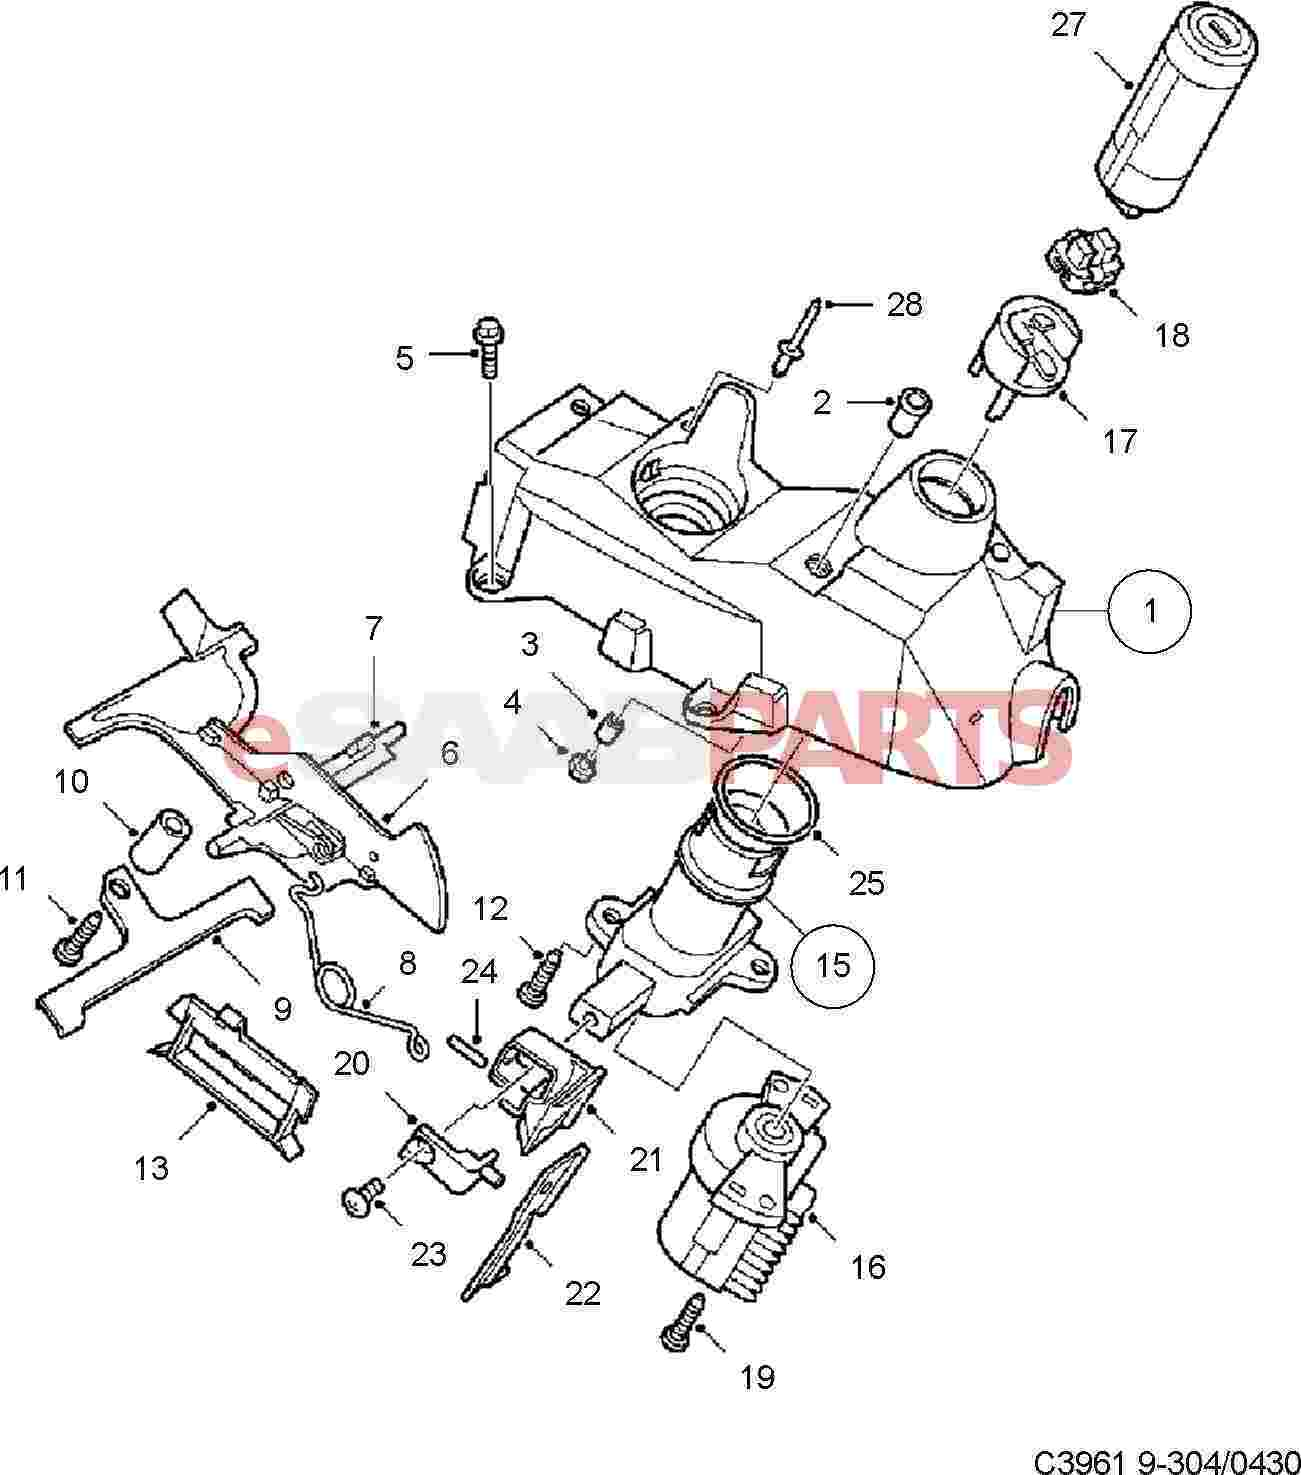 2004 Saab 9 3 Aero Fuse Diagram Html together with 2007 Saab 9 3 Parts Diagram besides 2015 Volkswagen Timing Belt Or Chain also 2009 Saab 9 7x Engine Diagram furthermore Saab 9 3 Manual Transmission Diagram. on saab 2 0t